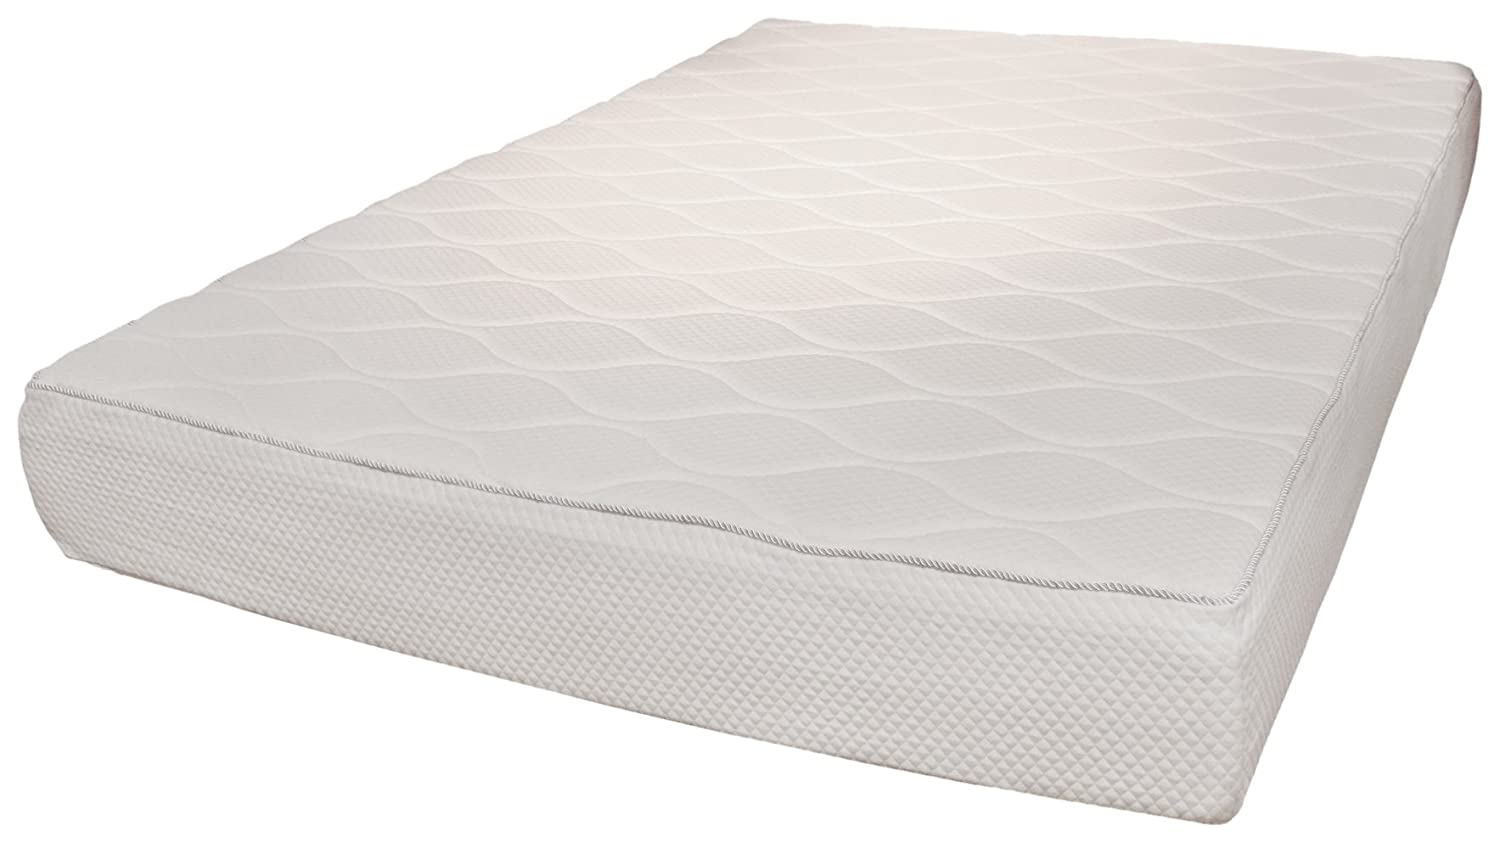 Rio Home Fashions 10-Inch Top Quilted Memory Foam Mattress